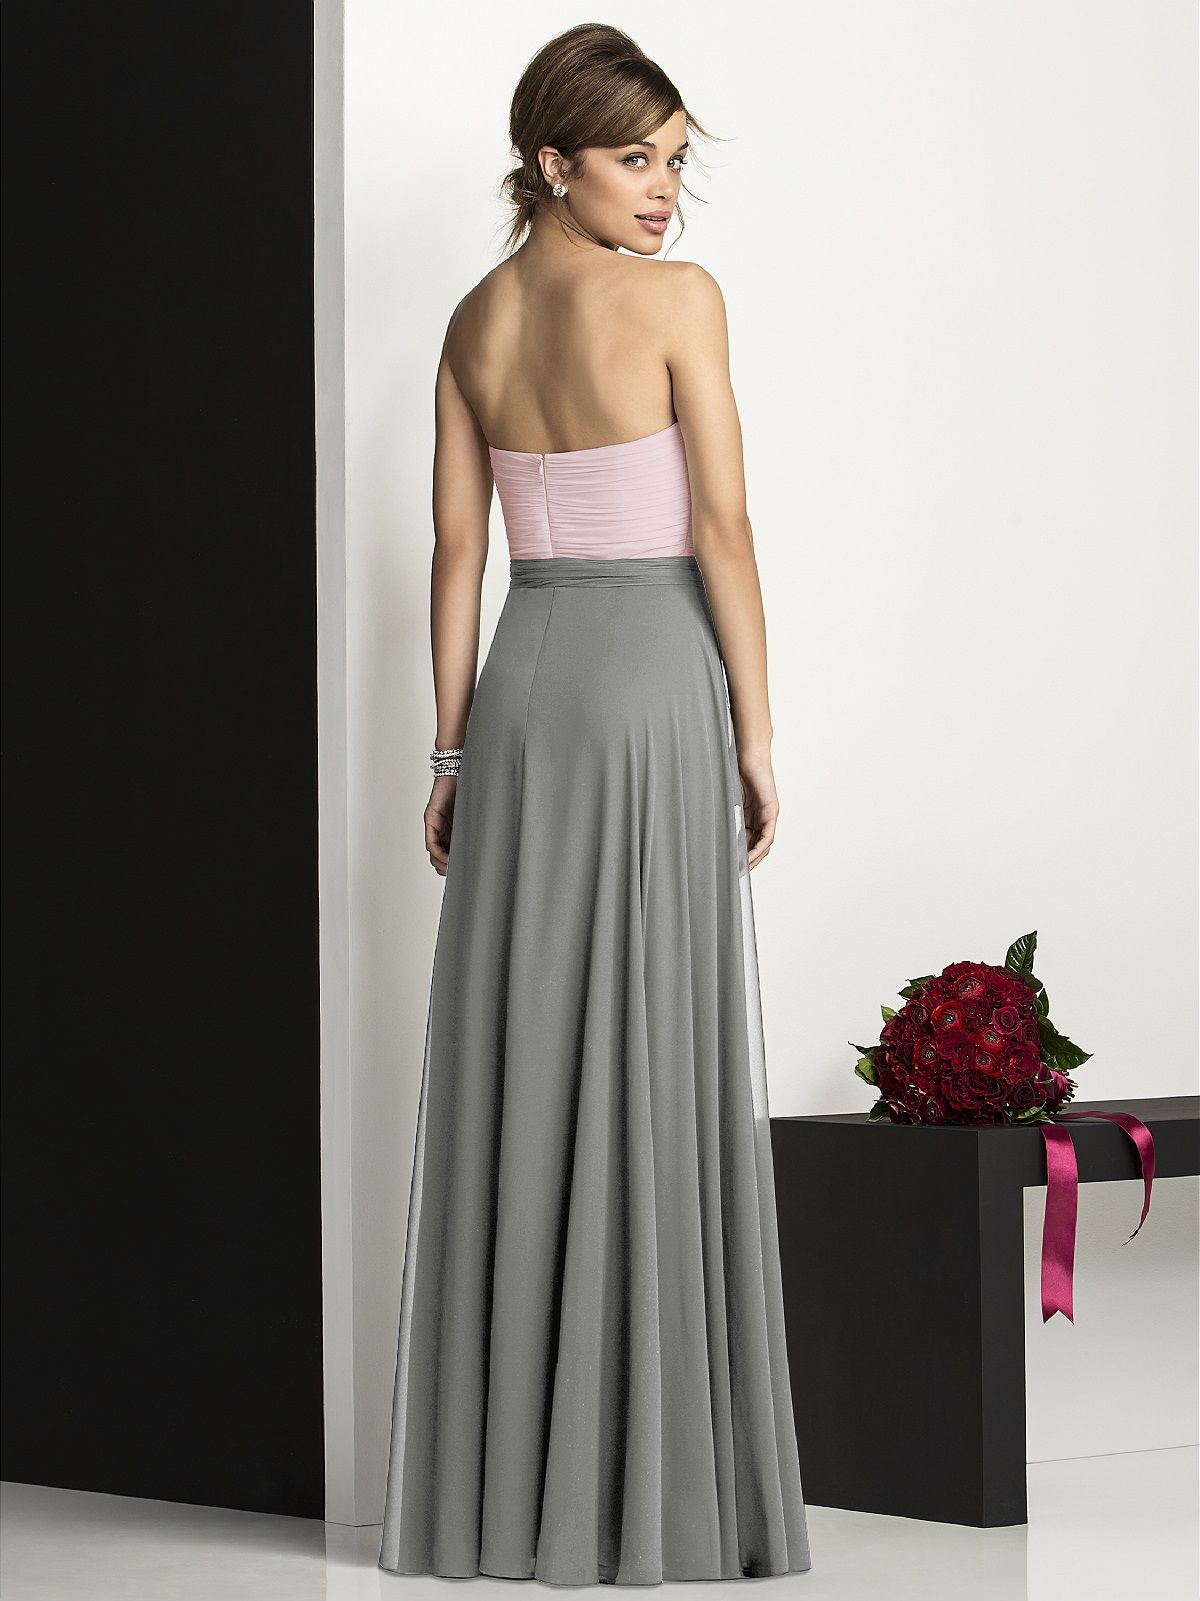 After six bridesmaids style 6677 httpdessydresses after six offers elegant and contemporary bridesmaid styles each dress is designed to provide affordable options for you without sacrificing style ombrellifo Choice Image